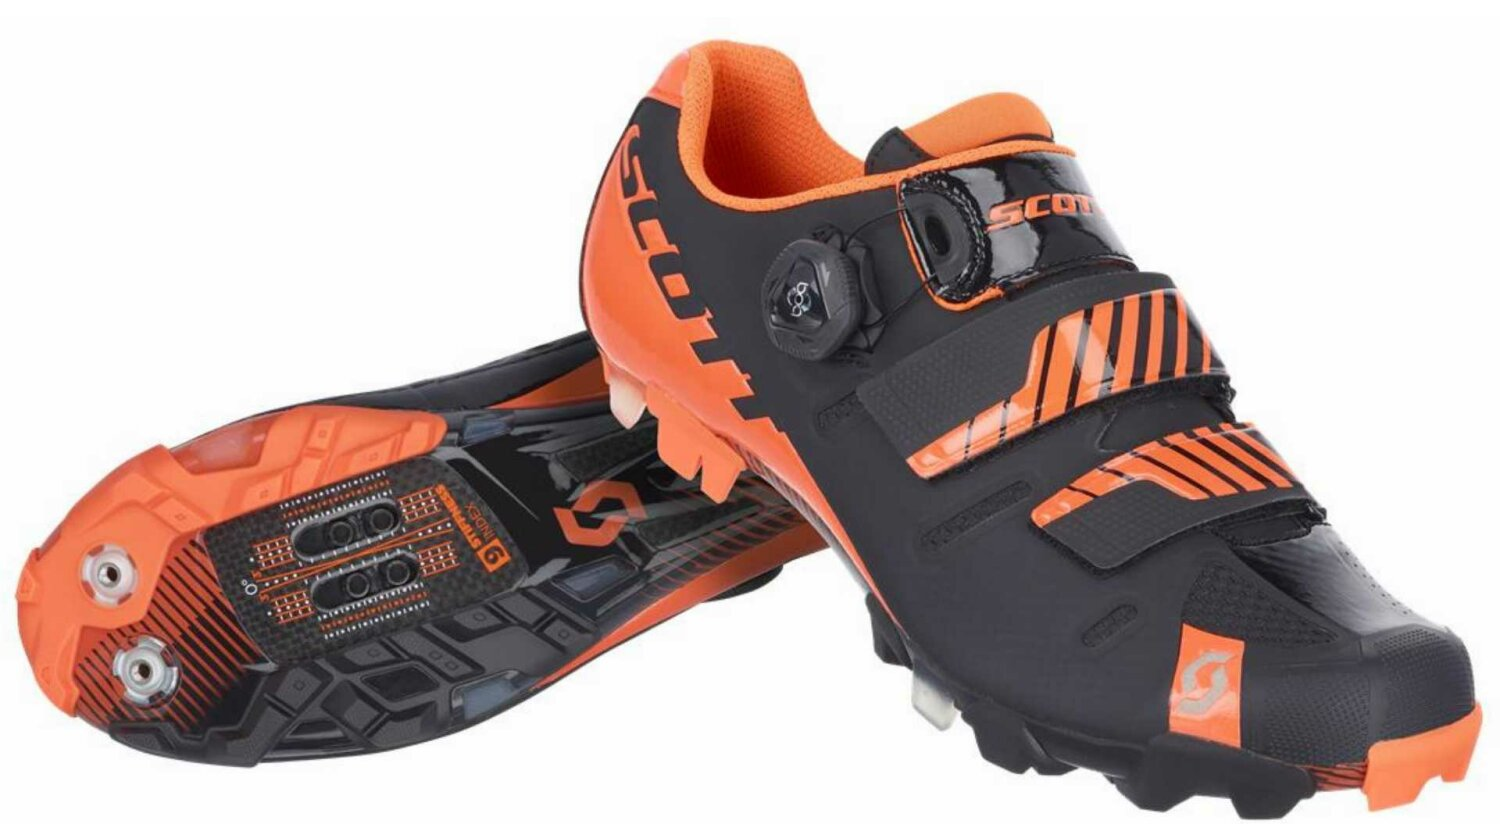 Scott MTB Premium Schuh black/neon orange gloss 40